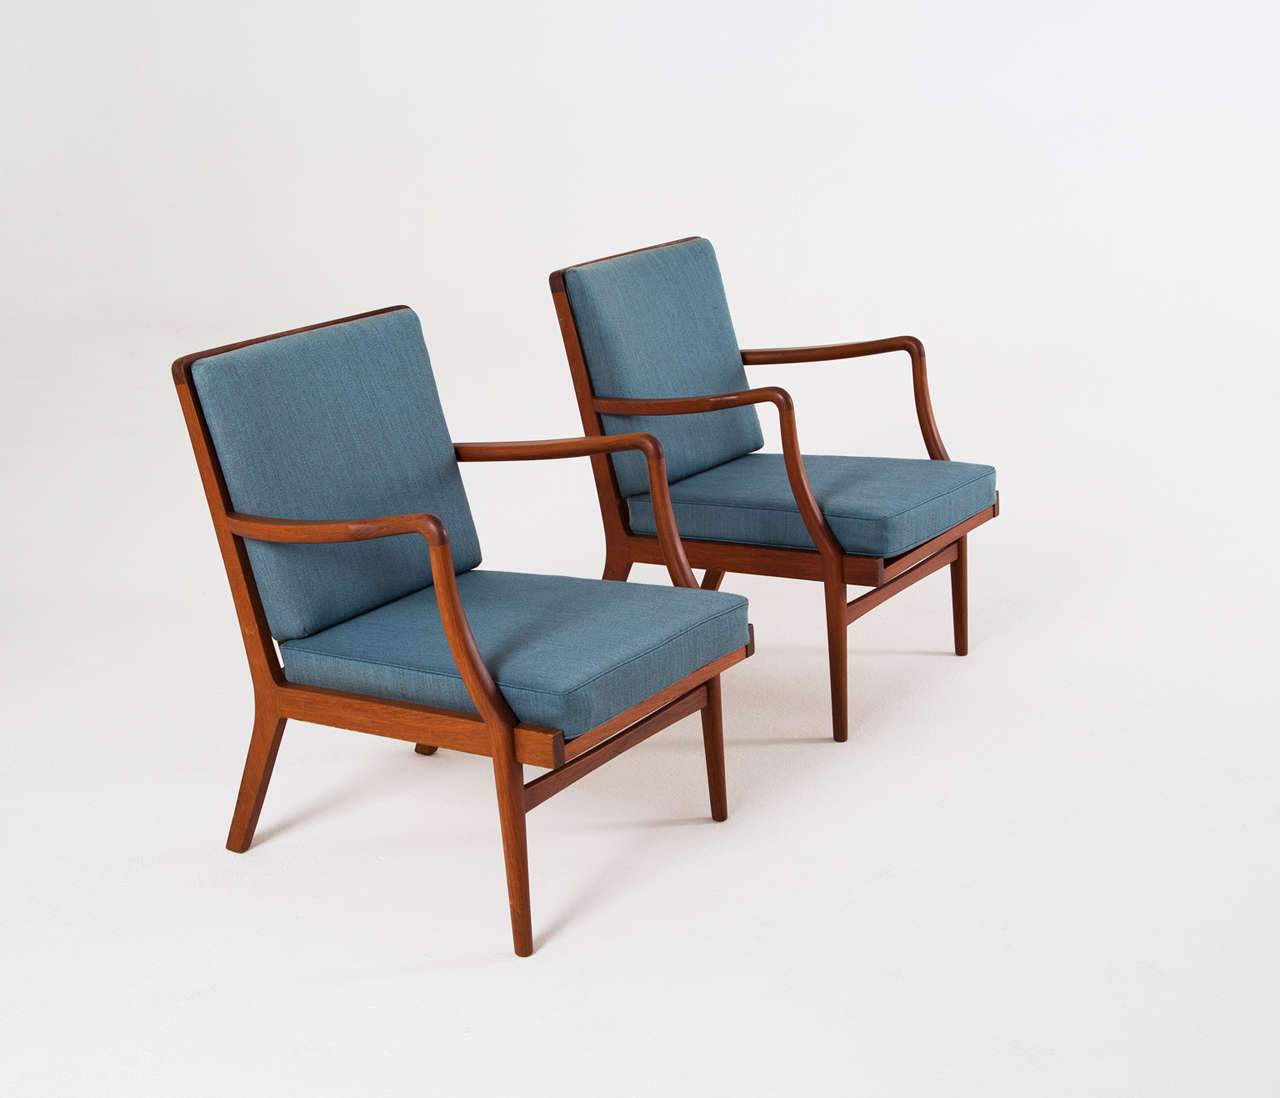 Pair Of Solid Teak Lounge Chairs By Peder Christensen At 1stdibs